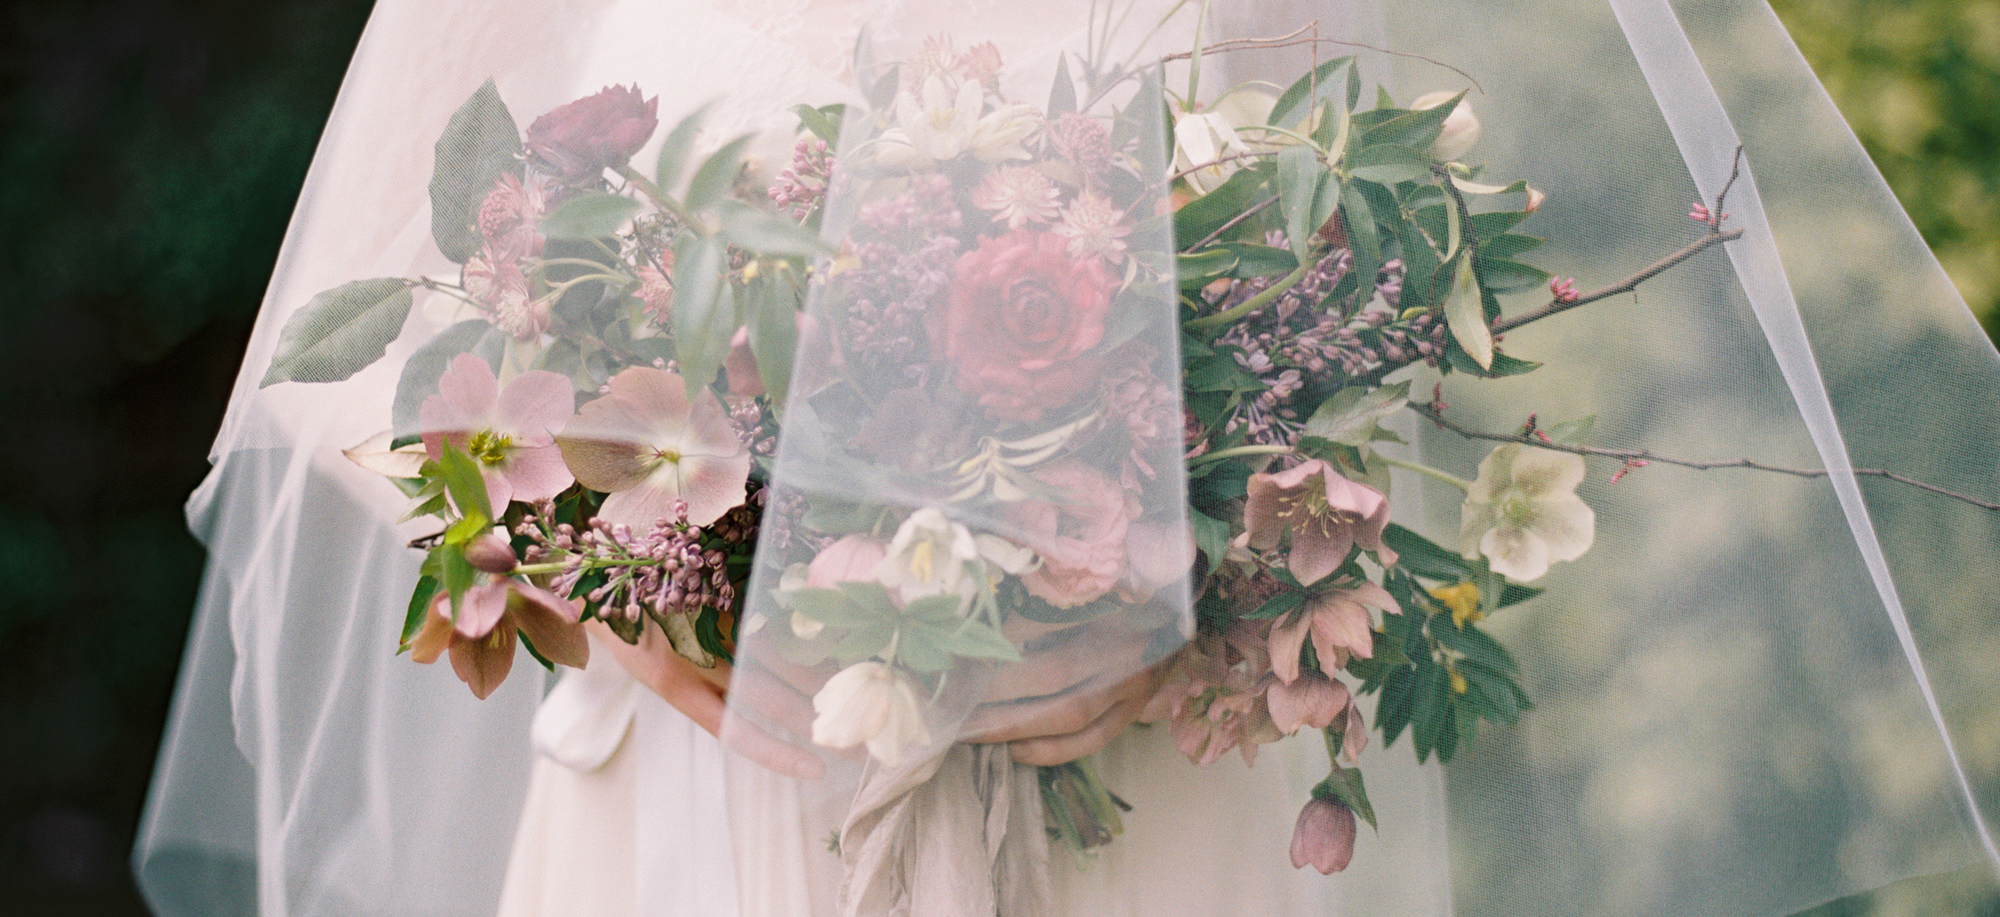 wedding flowers under veil